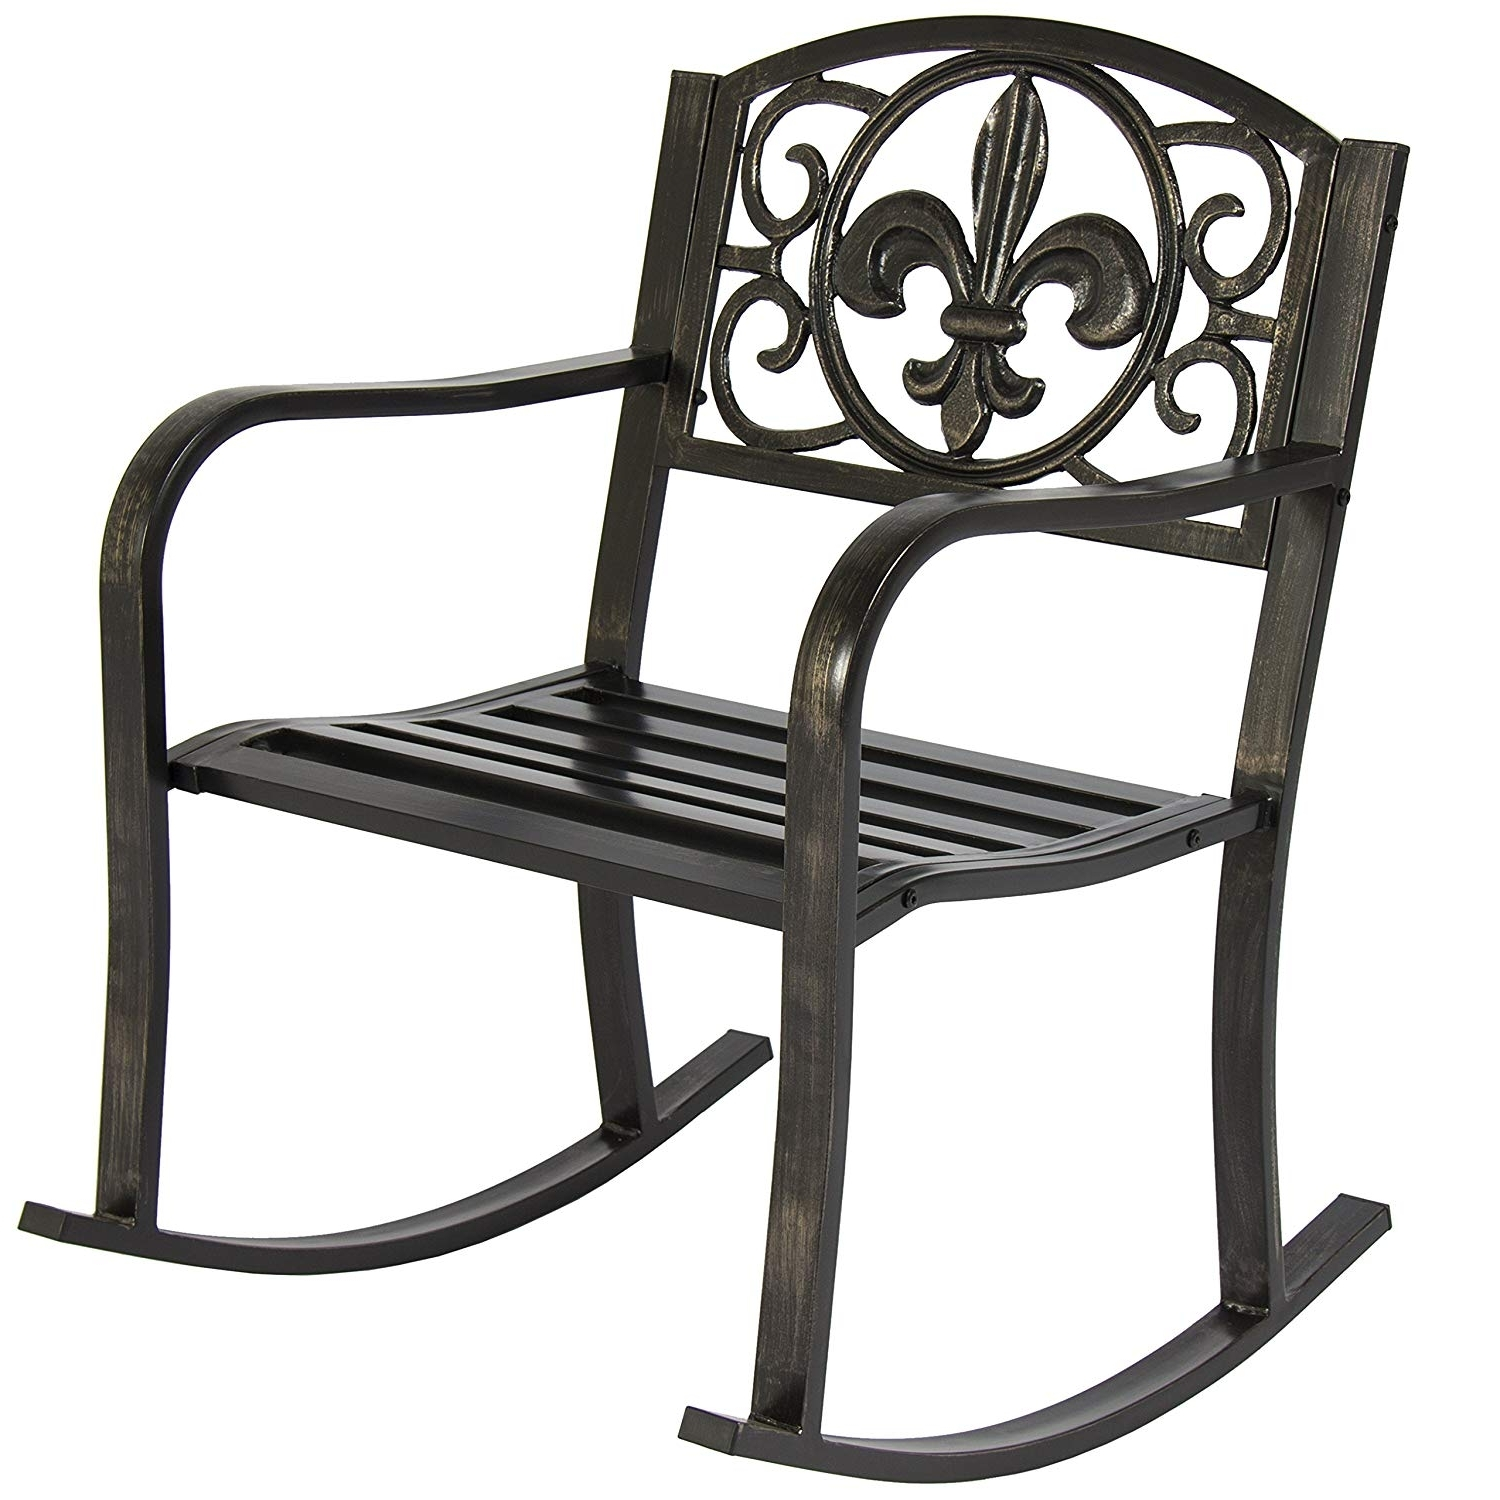 Vintage Outdoor Rocking Chairs Inside Widely Used Amazon : Best Choice Products Metal Rocking Chair Seat For Patio (Gallery 12 of 15)